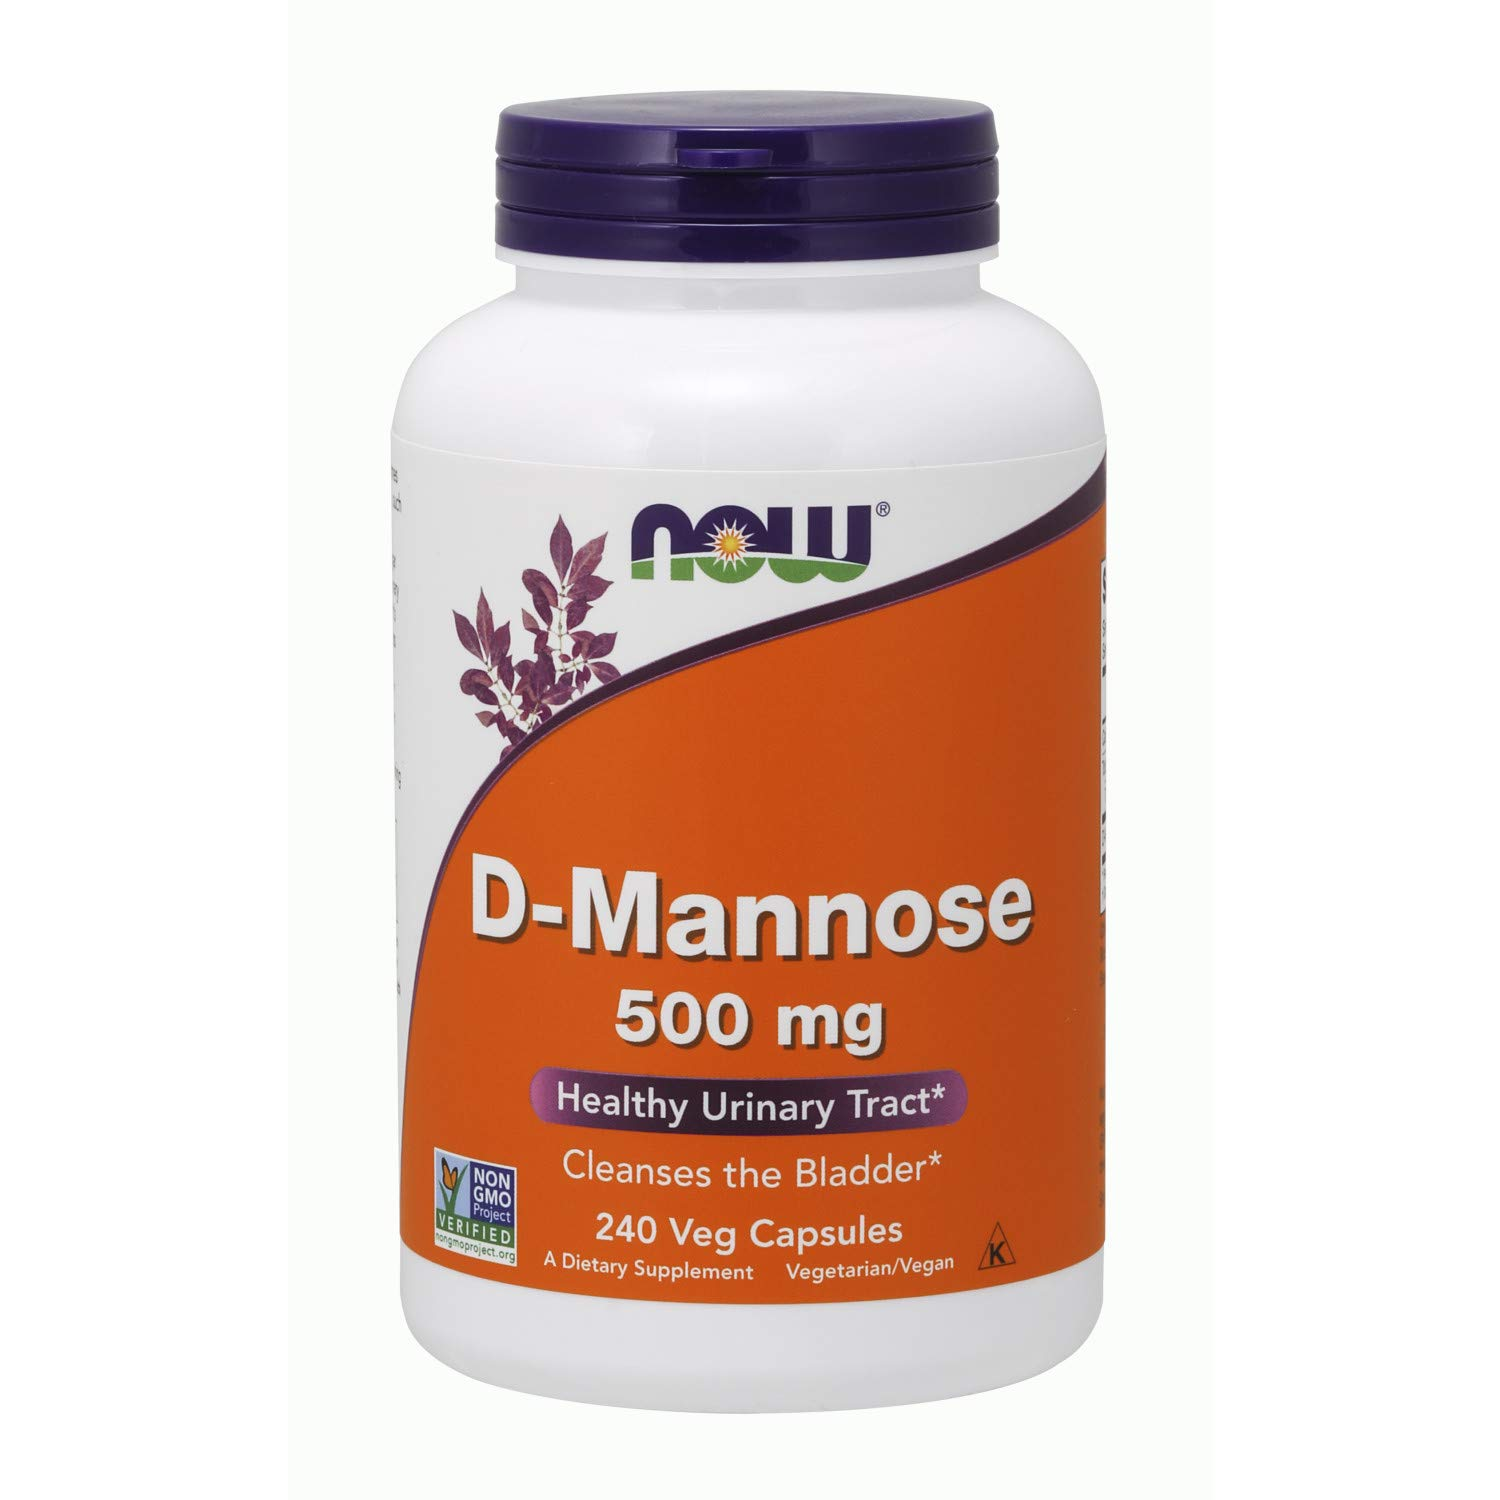 NOW Supplements, Certified Non-GMO, D-Mannose 500 mg, 240 Veg Capsules by NOW